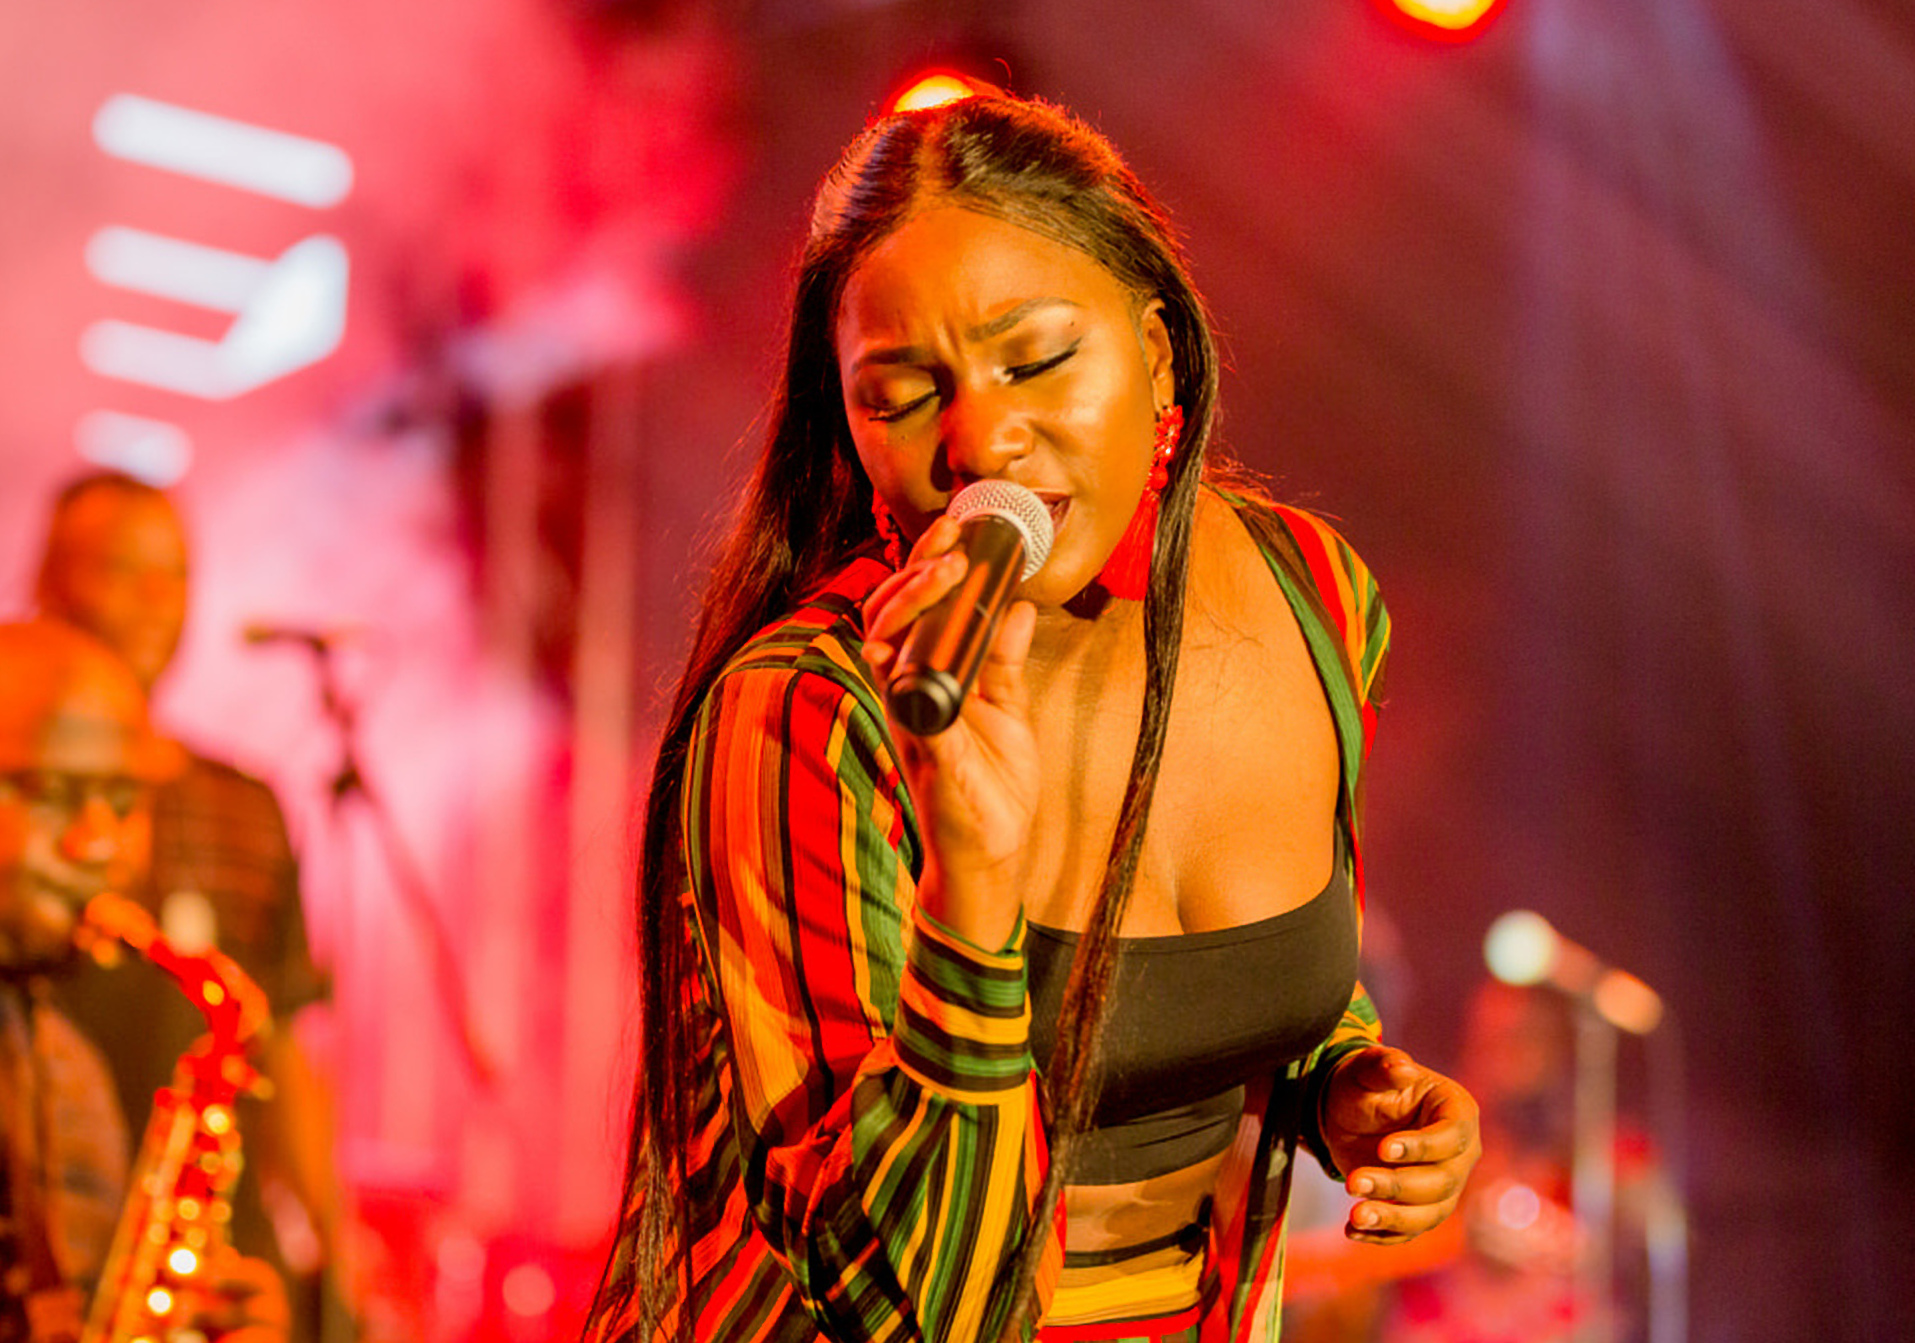 Irene Ntale to perform on her concert soon. (FILE PHOTO)